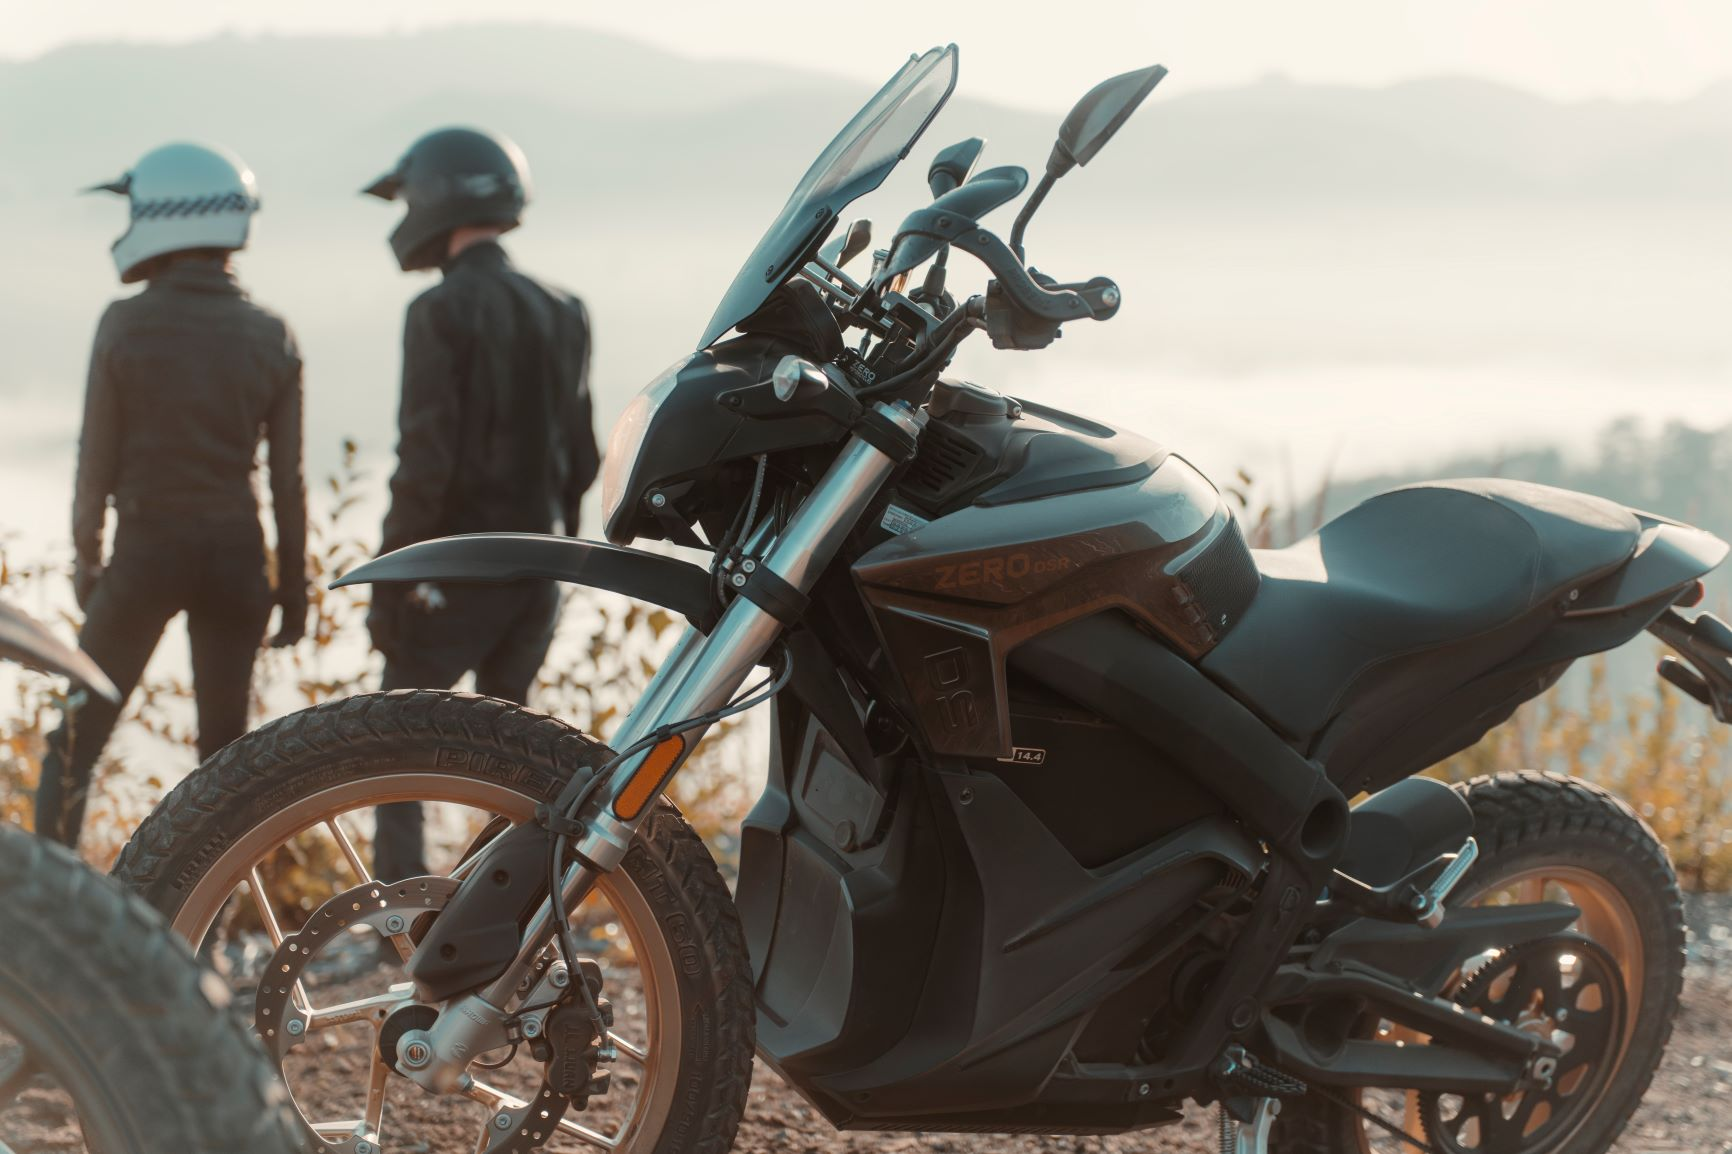 2019 Zero Motorcycles Lineup: The Clear Leader in Electric